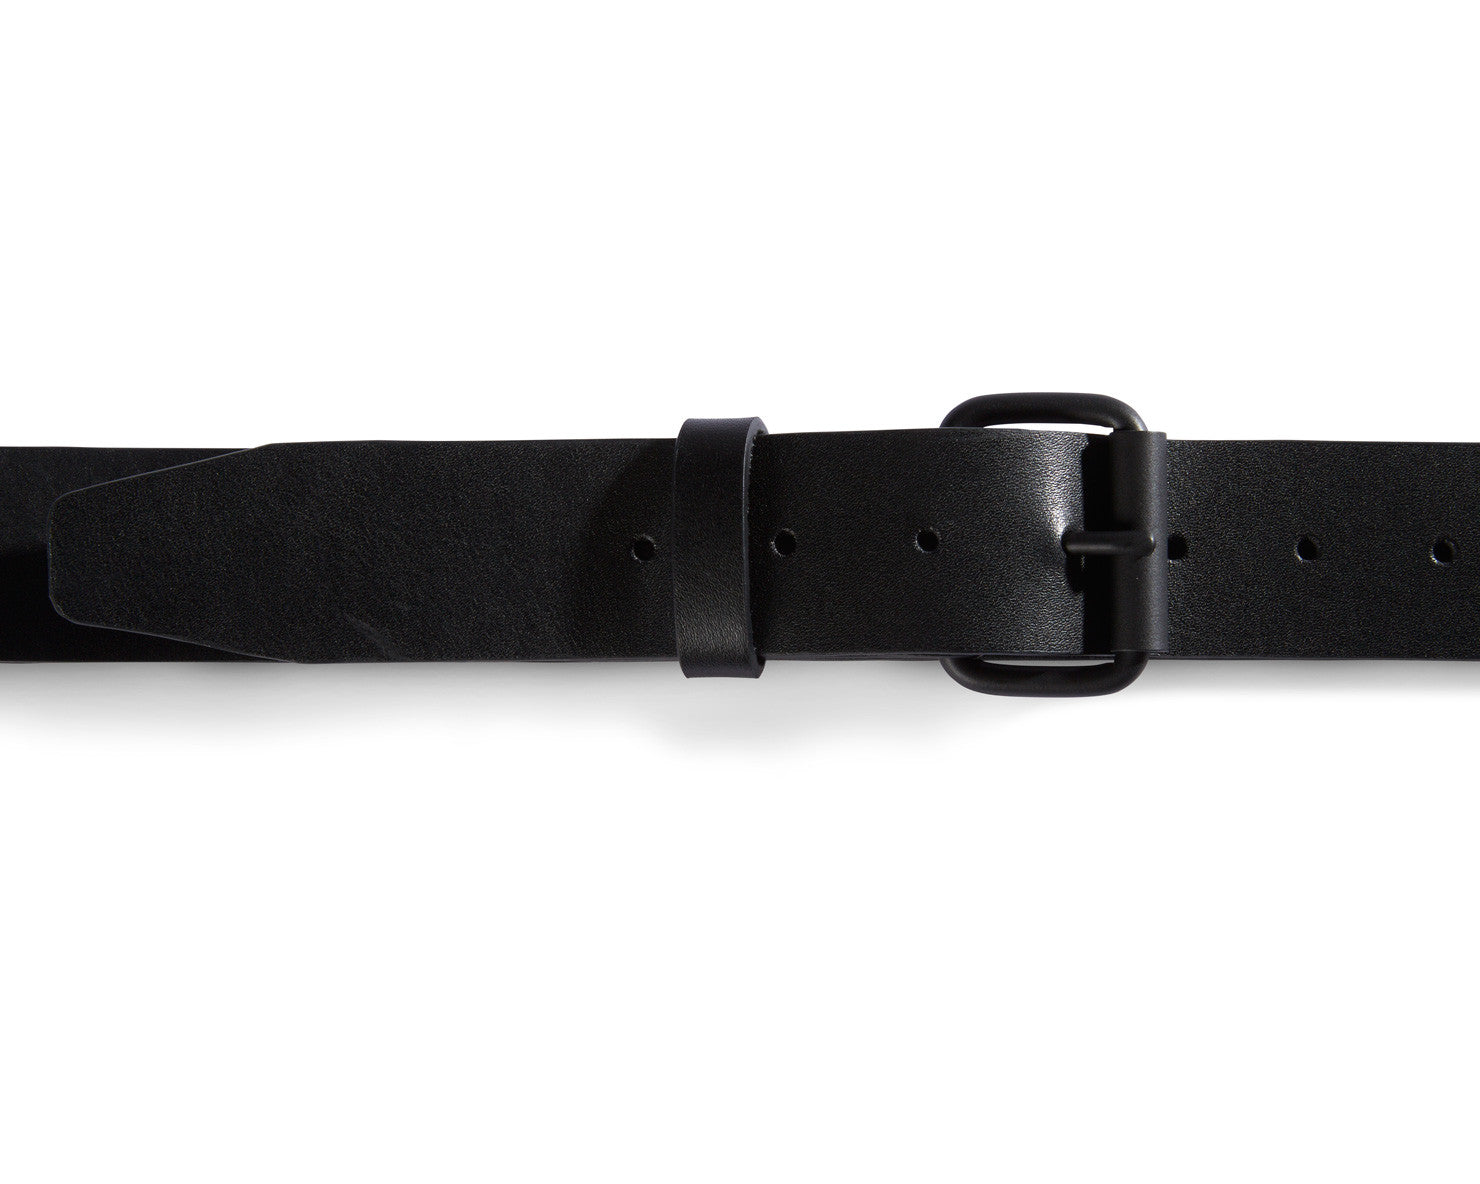 BELT | KILLSPENCER® - Black Bullhide Leather